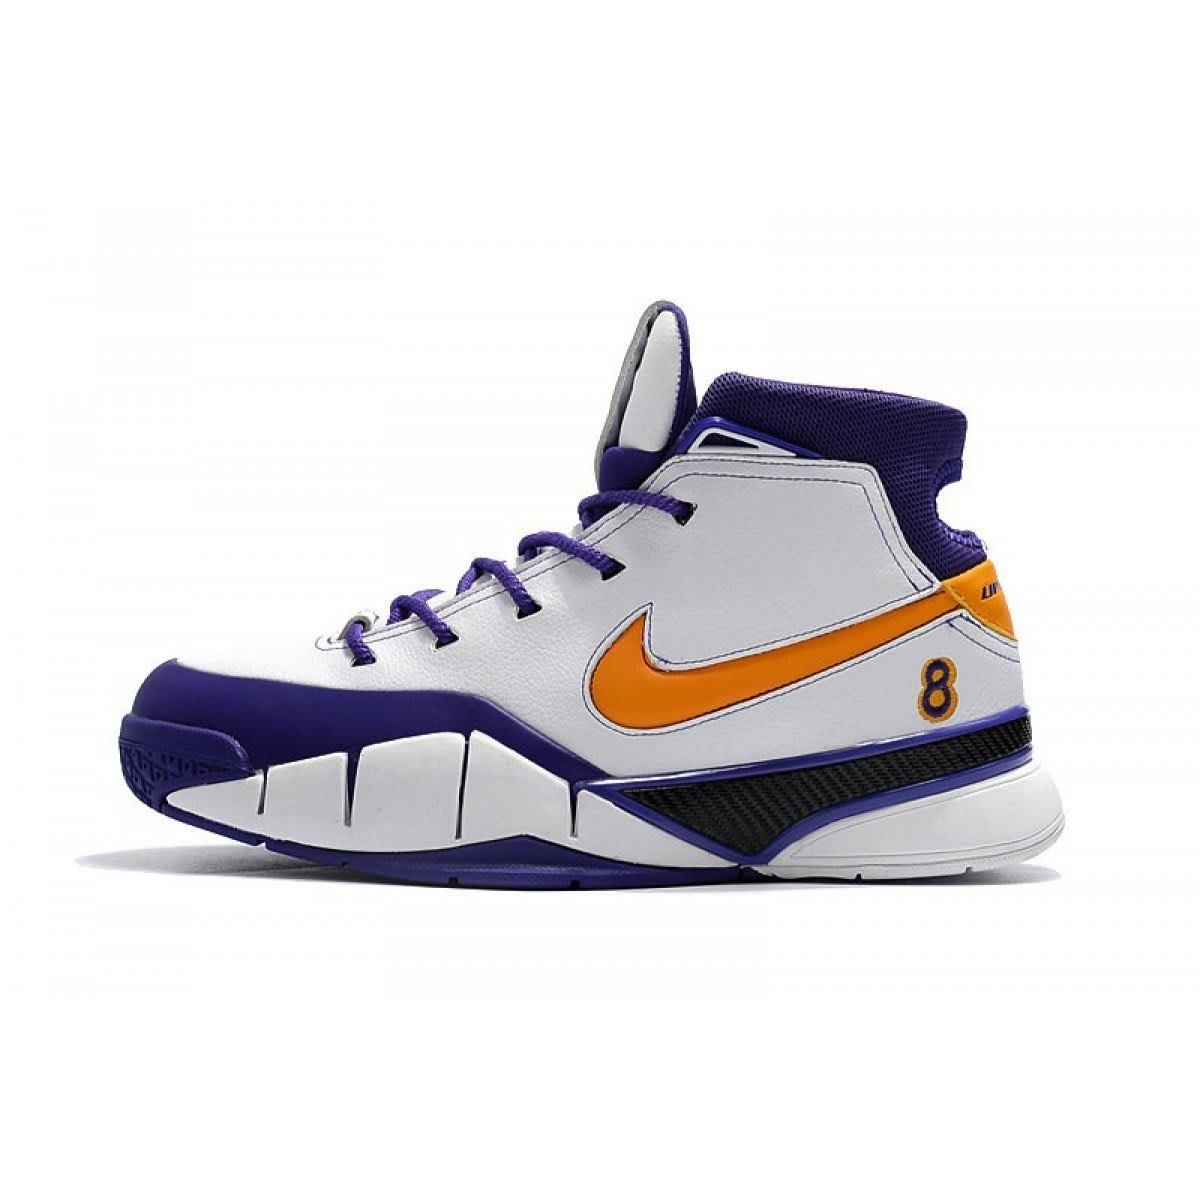 【美國鞋校】預購 Kobe 1 Protro Think 16 (Close Out) AQ2728-101